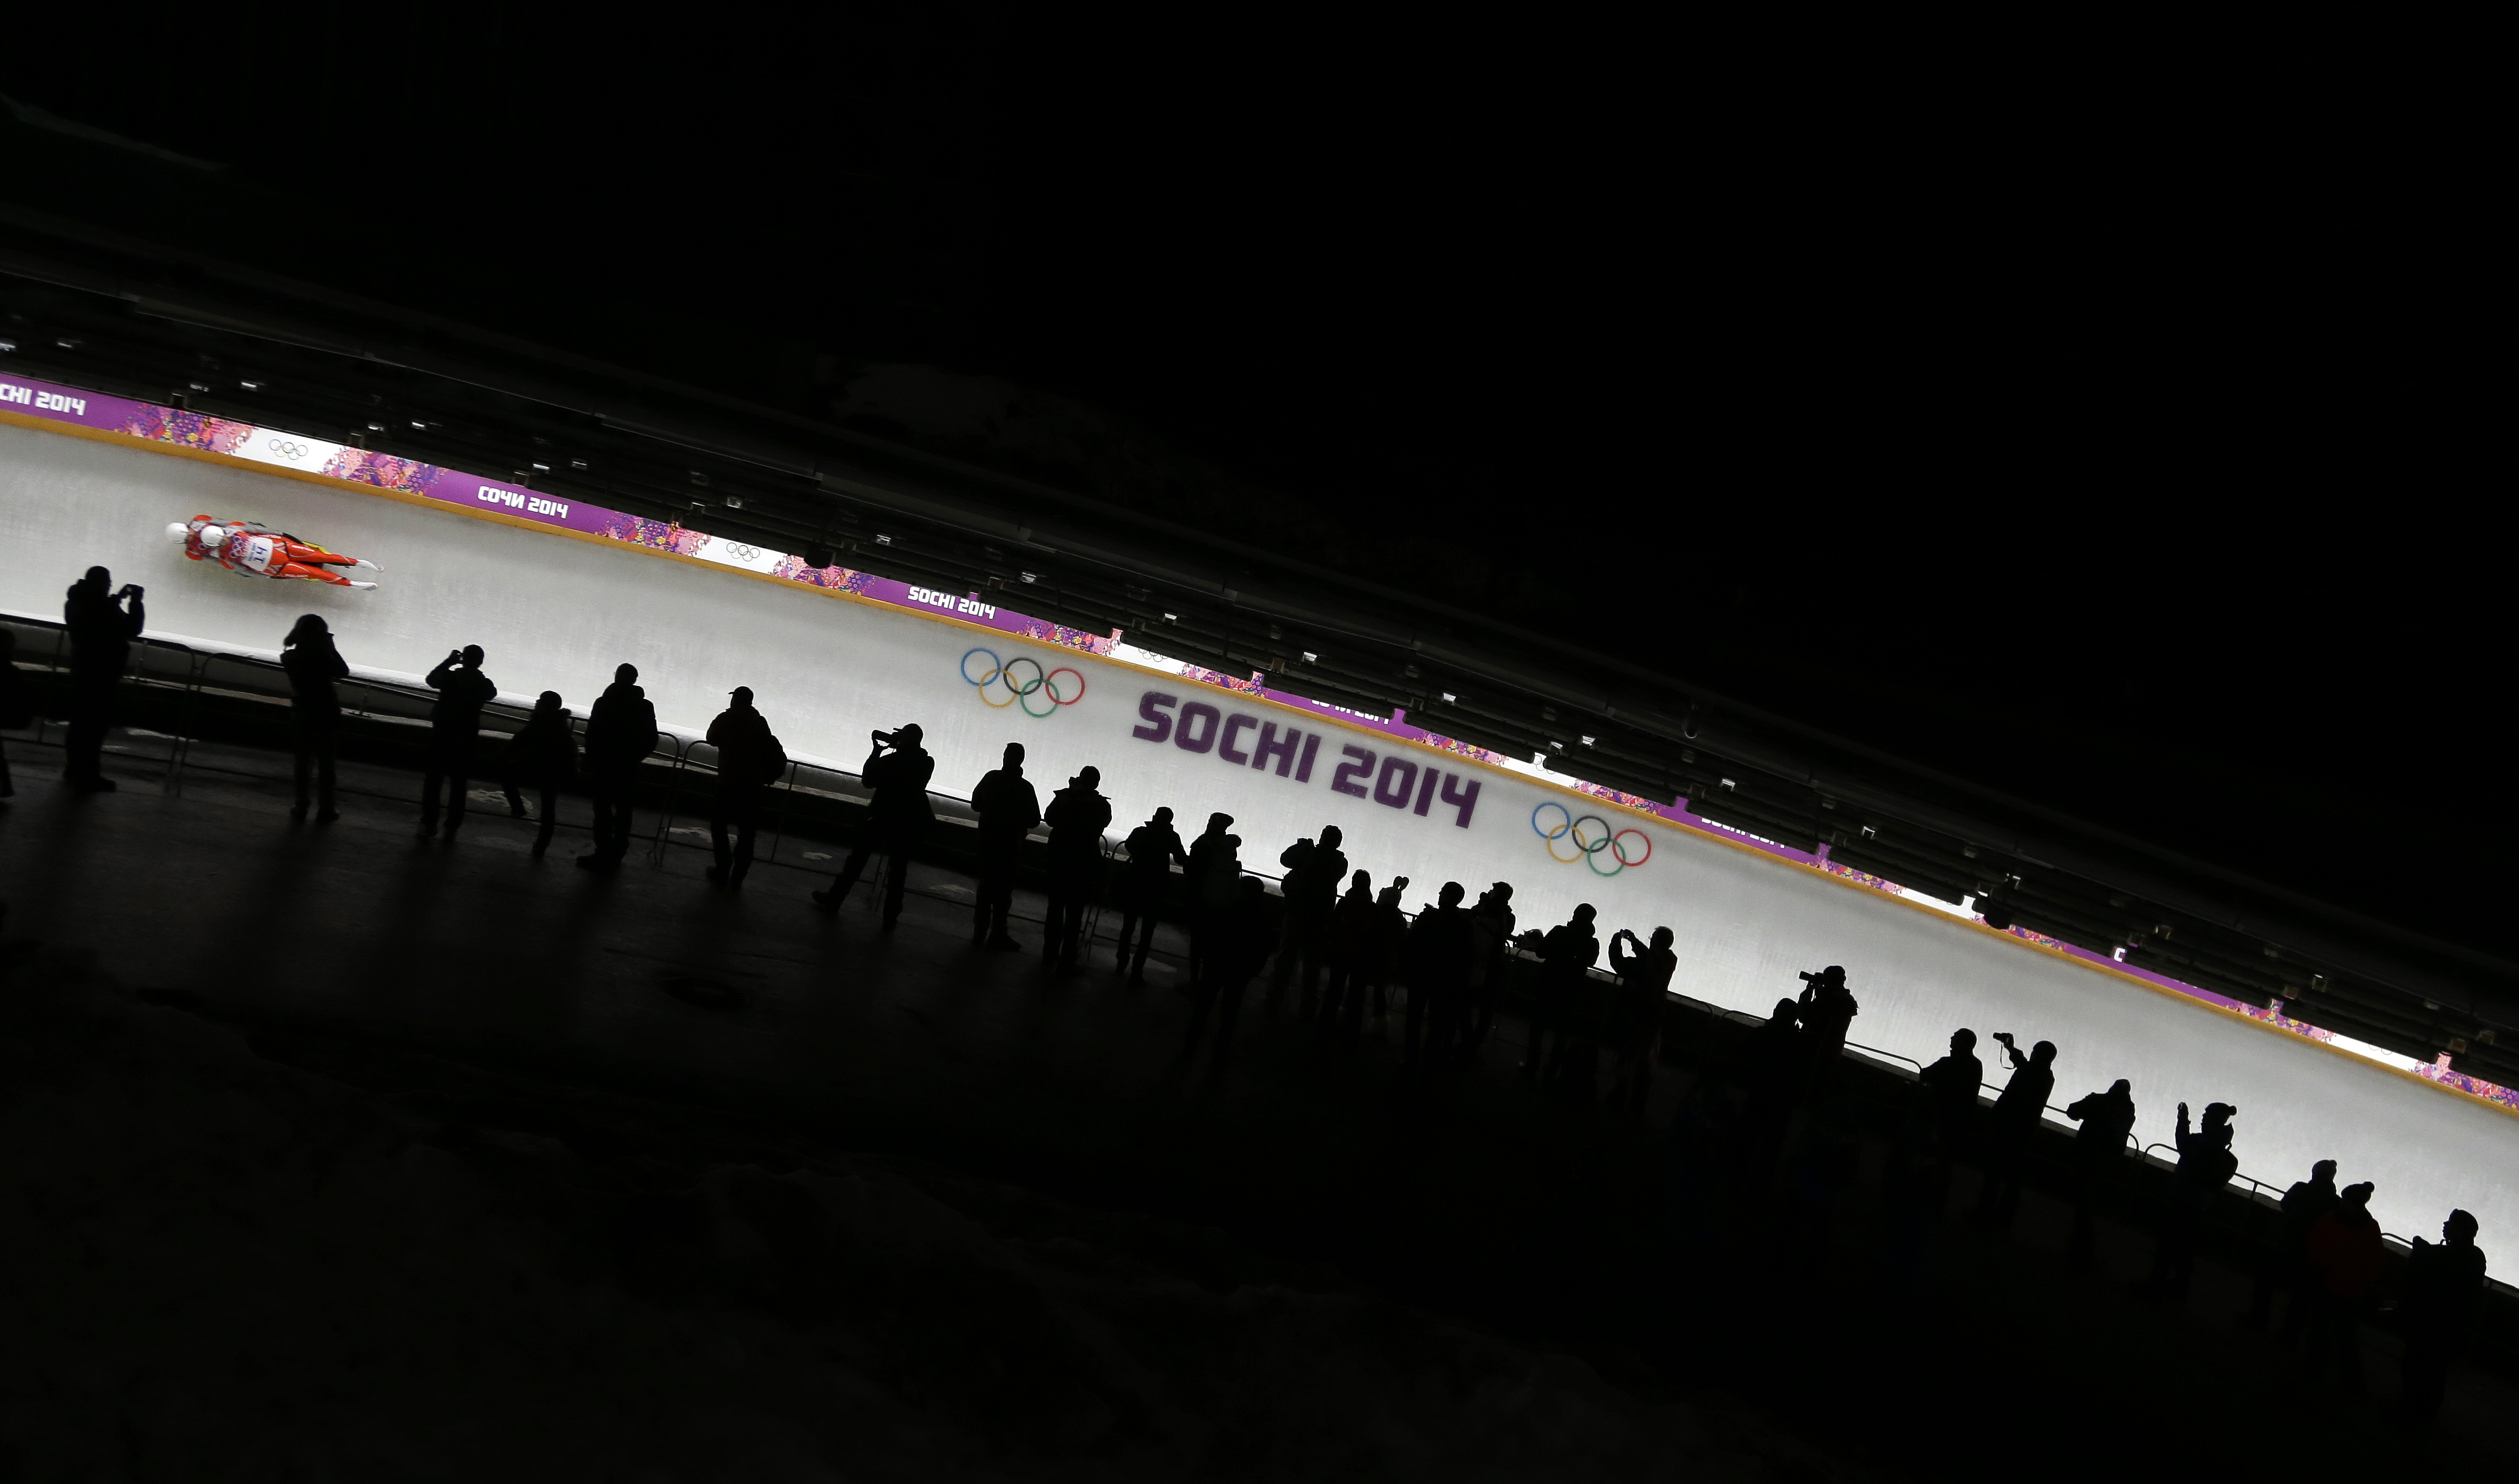 The doubles team of Patryk Poreba and Karol Mikrut of Poland race down the track in their final run during the men's doubles luge at the 2014 Winter Olympics, Wednesday, Feb. 12, 2014, in Krasnaya Polyana, Russia. (AP Photo/Natacha Pisarenko)